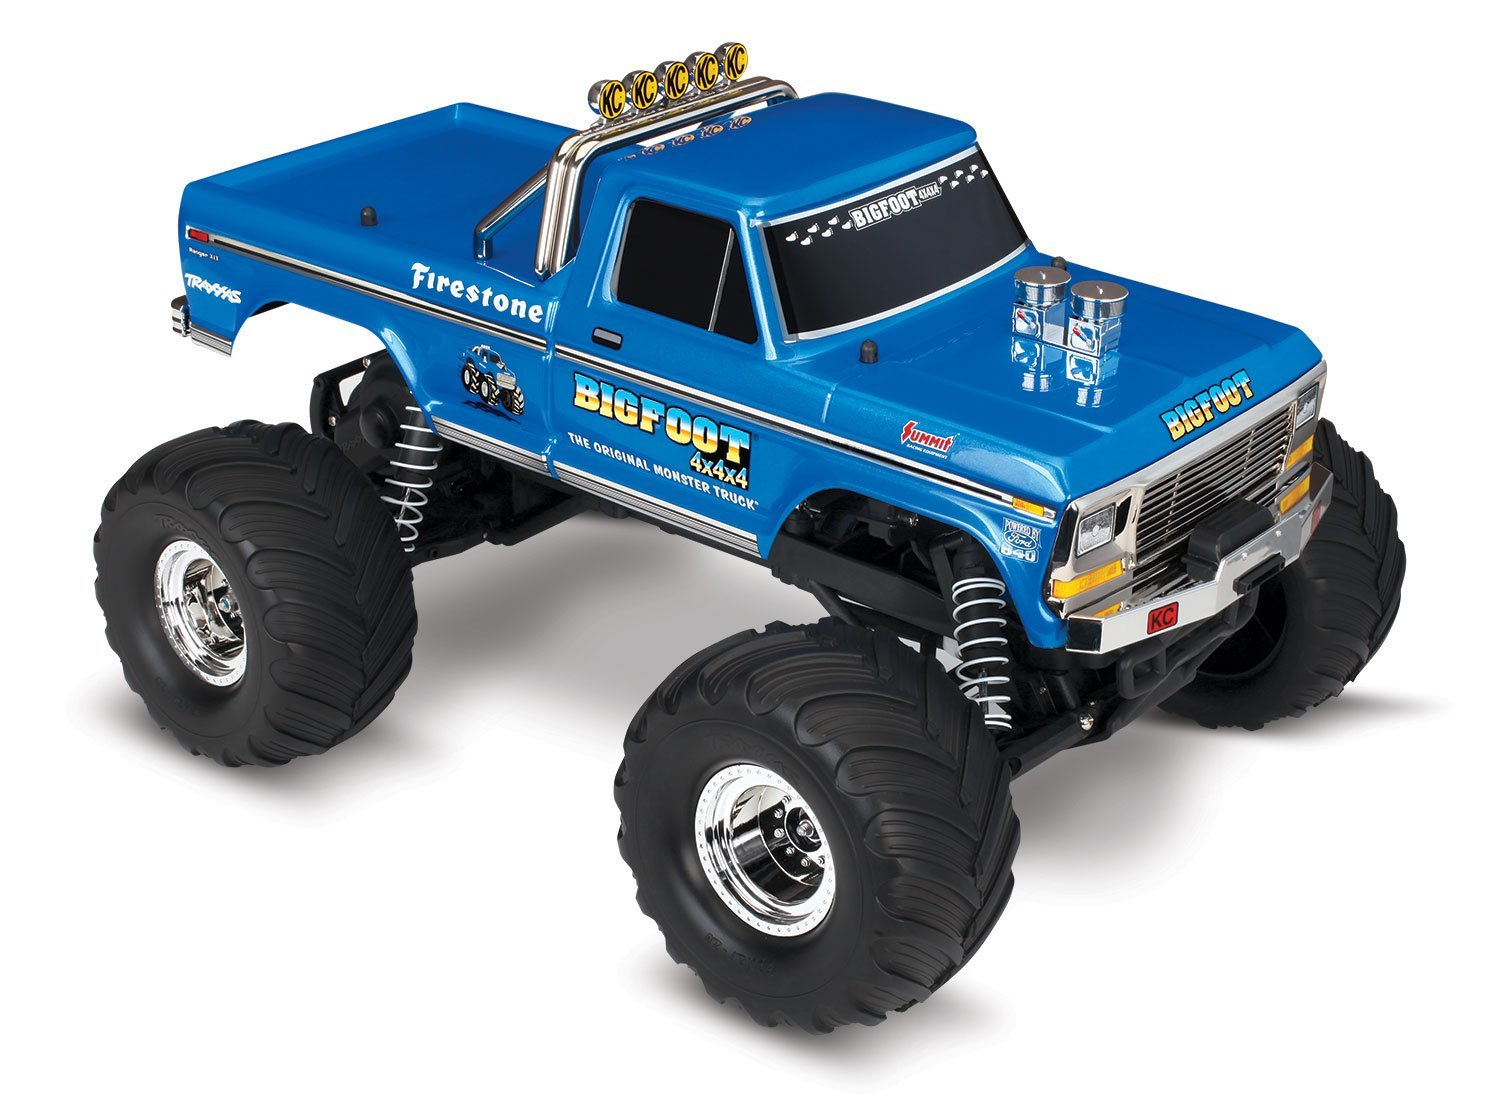 Traxxas Bigfoot No1 EP MT rtr complete